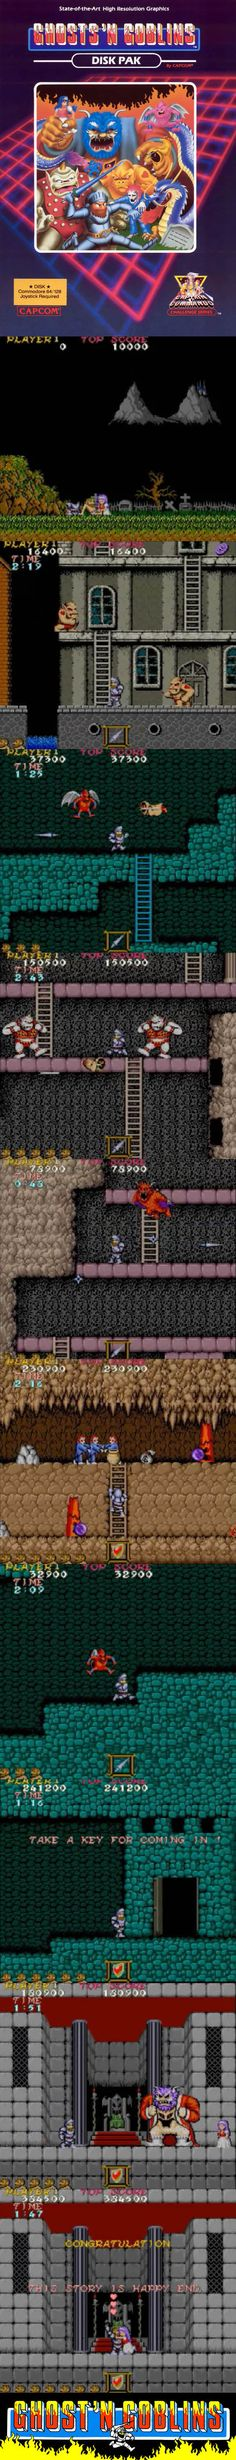 Ghosts'n Goblins is a very difficult arcade game that fits well on home consoles. Pc Games, Arcade Games, Games Memes, Gamer News, Game Gui, Classic Video Games, Sega Dreamcast, Retro Gamer, School Games